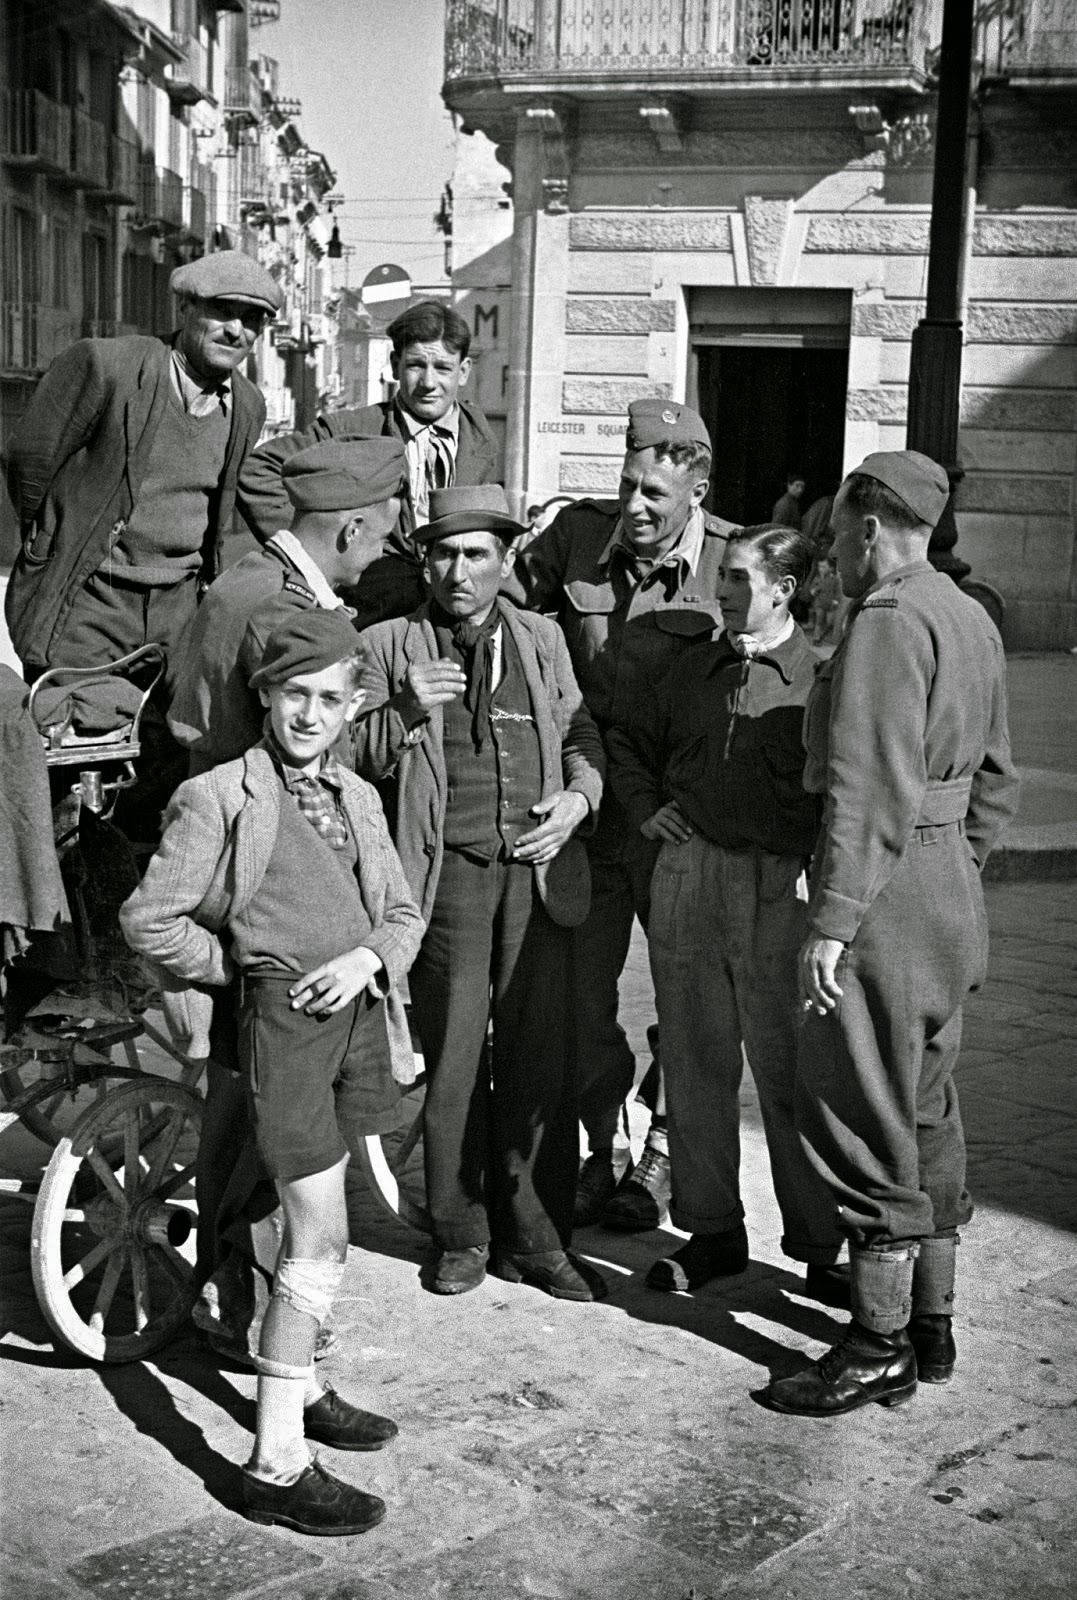 Molise Campobasso, Italy in 1944 - New Zealand troops on leave meet a gharri driver for sightseeing   #TuscanyAgriturismoGiratola